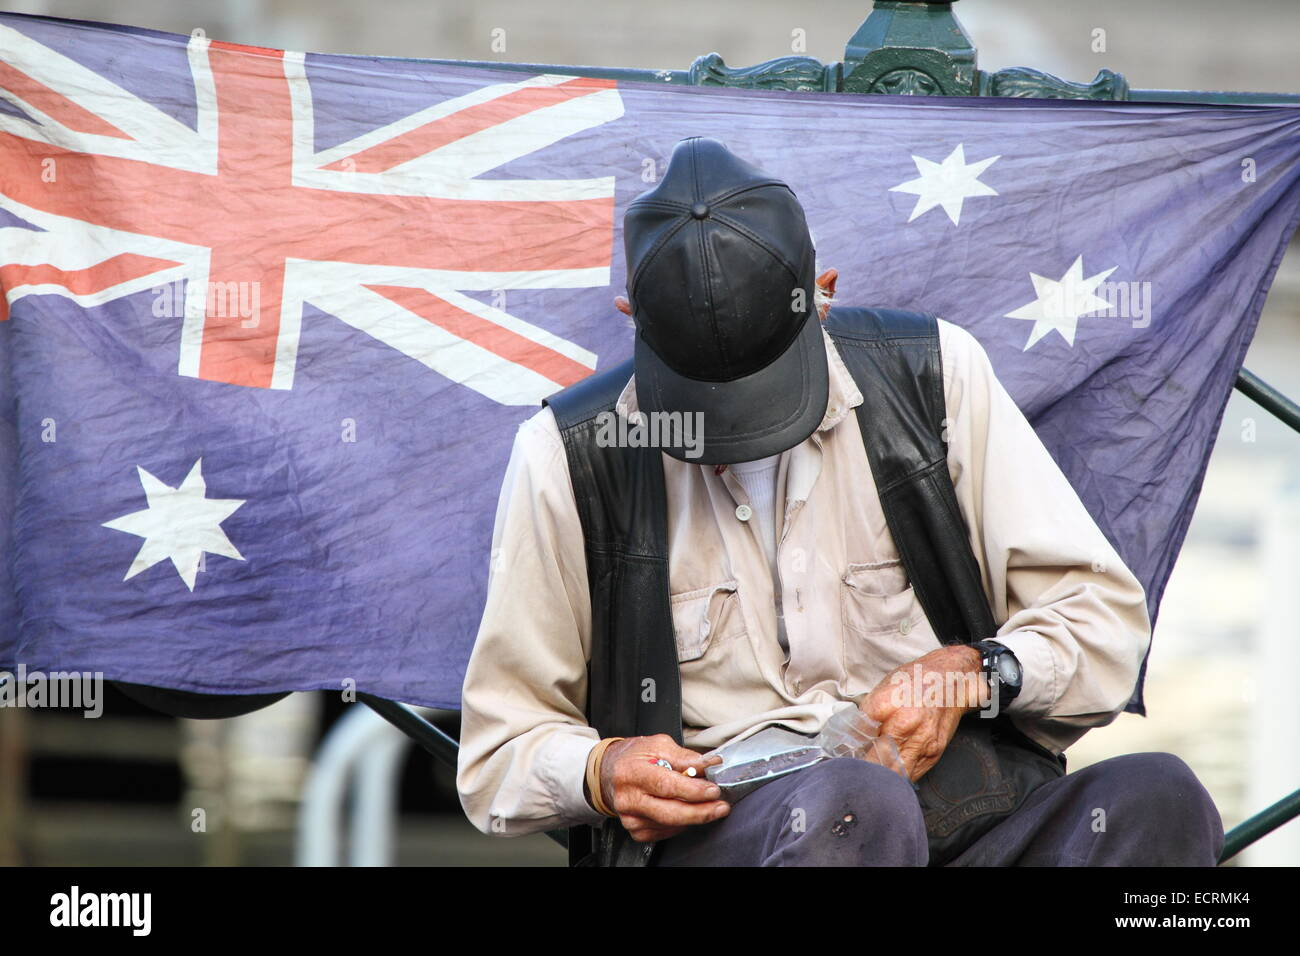 An elderly busker with leather cap and vest taking a cigarette break at Circular Quay, Sydney, NSW, Australia. - Stock Image